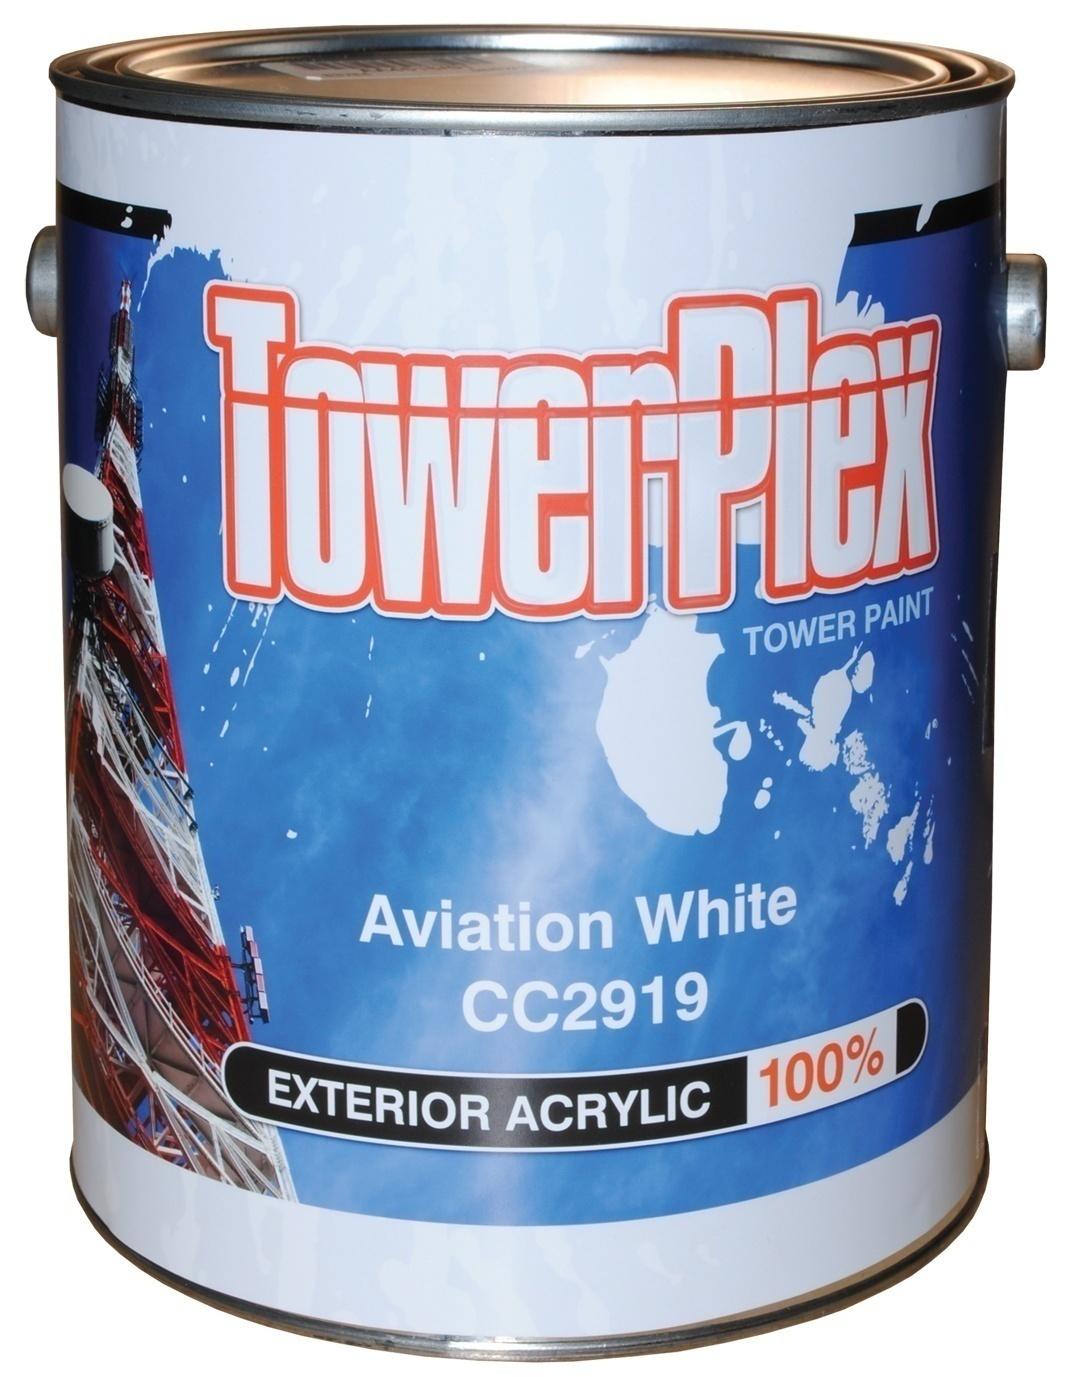 CC2919 TowerPlex Aviation White Tower Paint (5 Gallons) from GME Supply